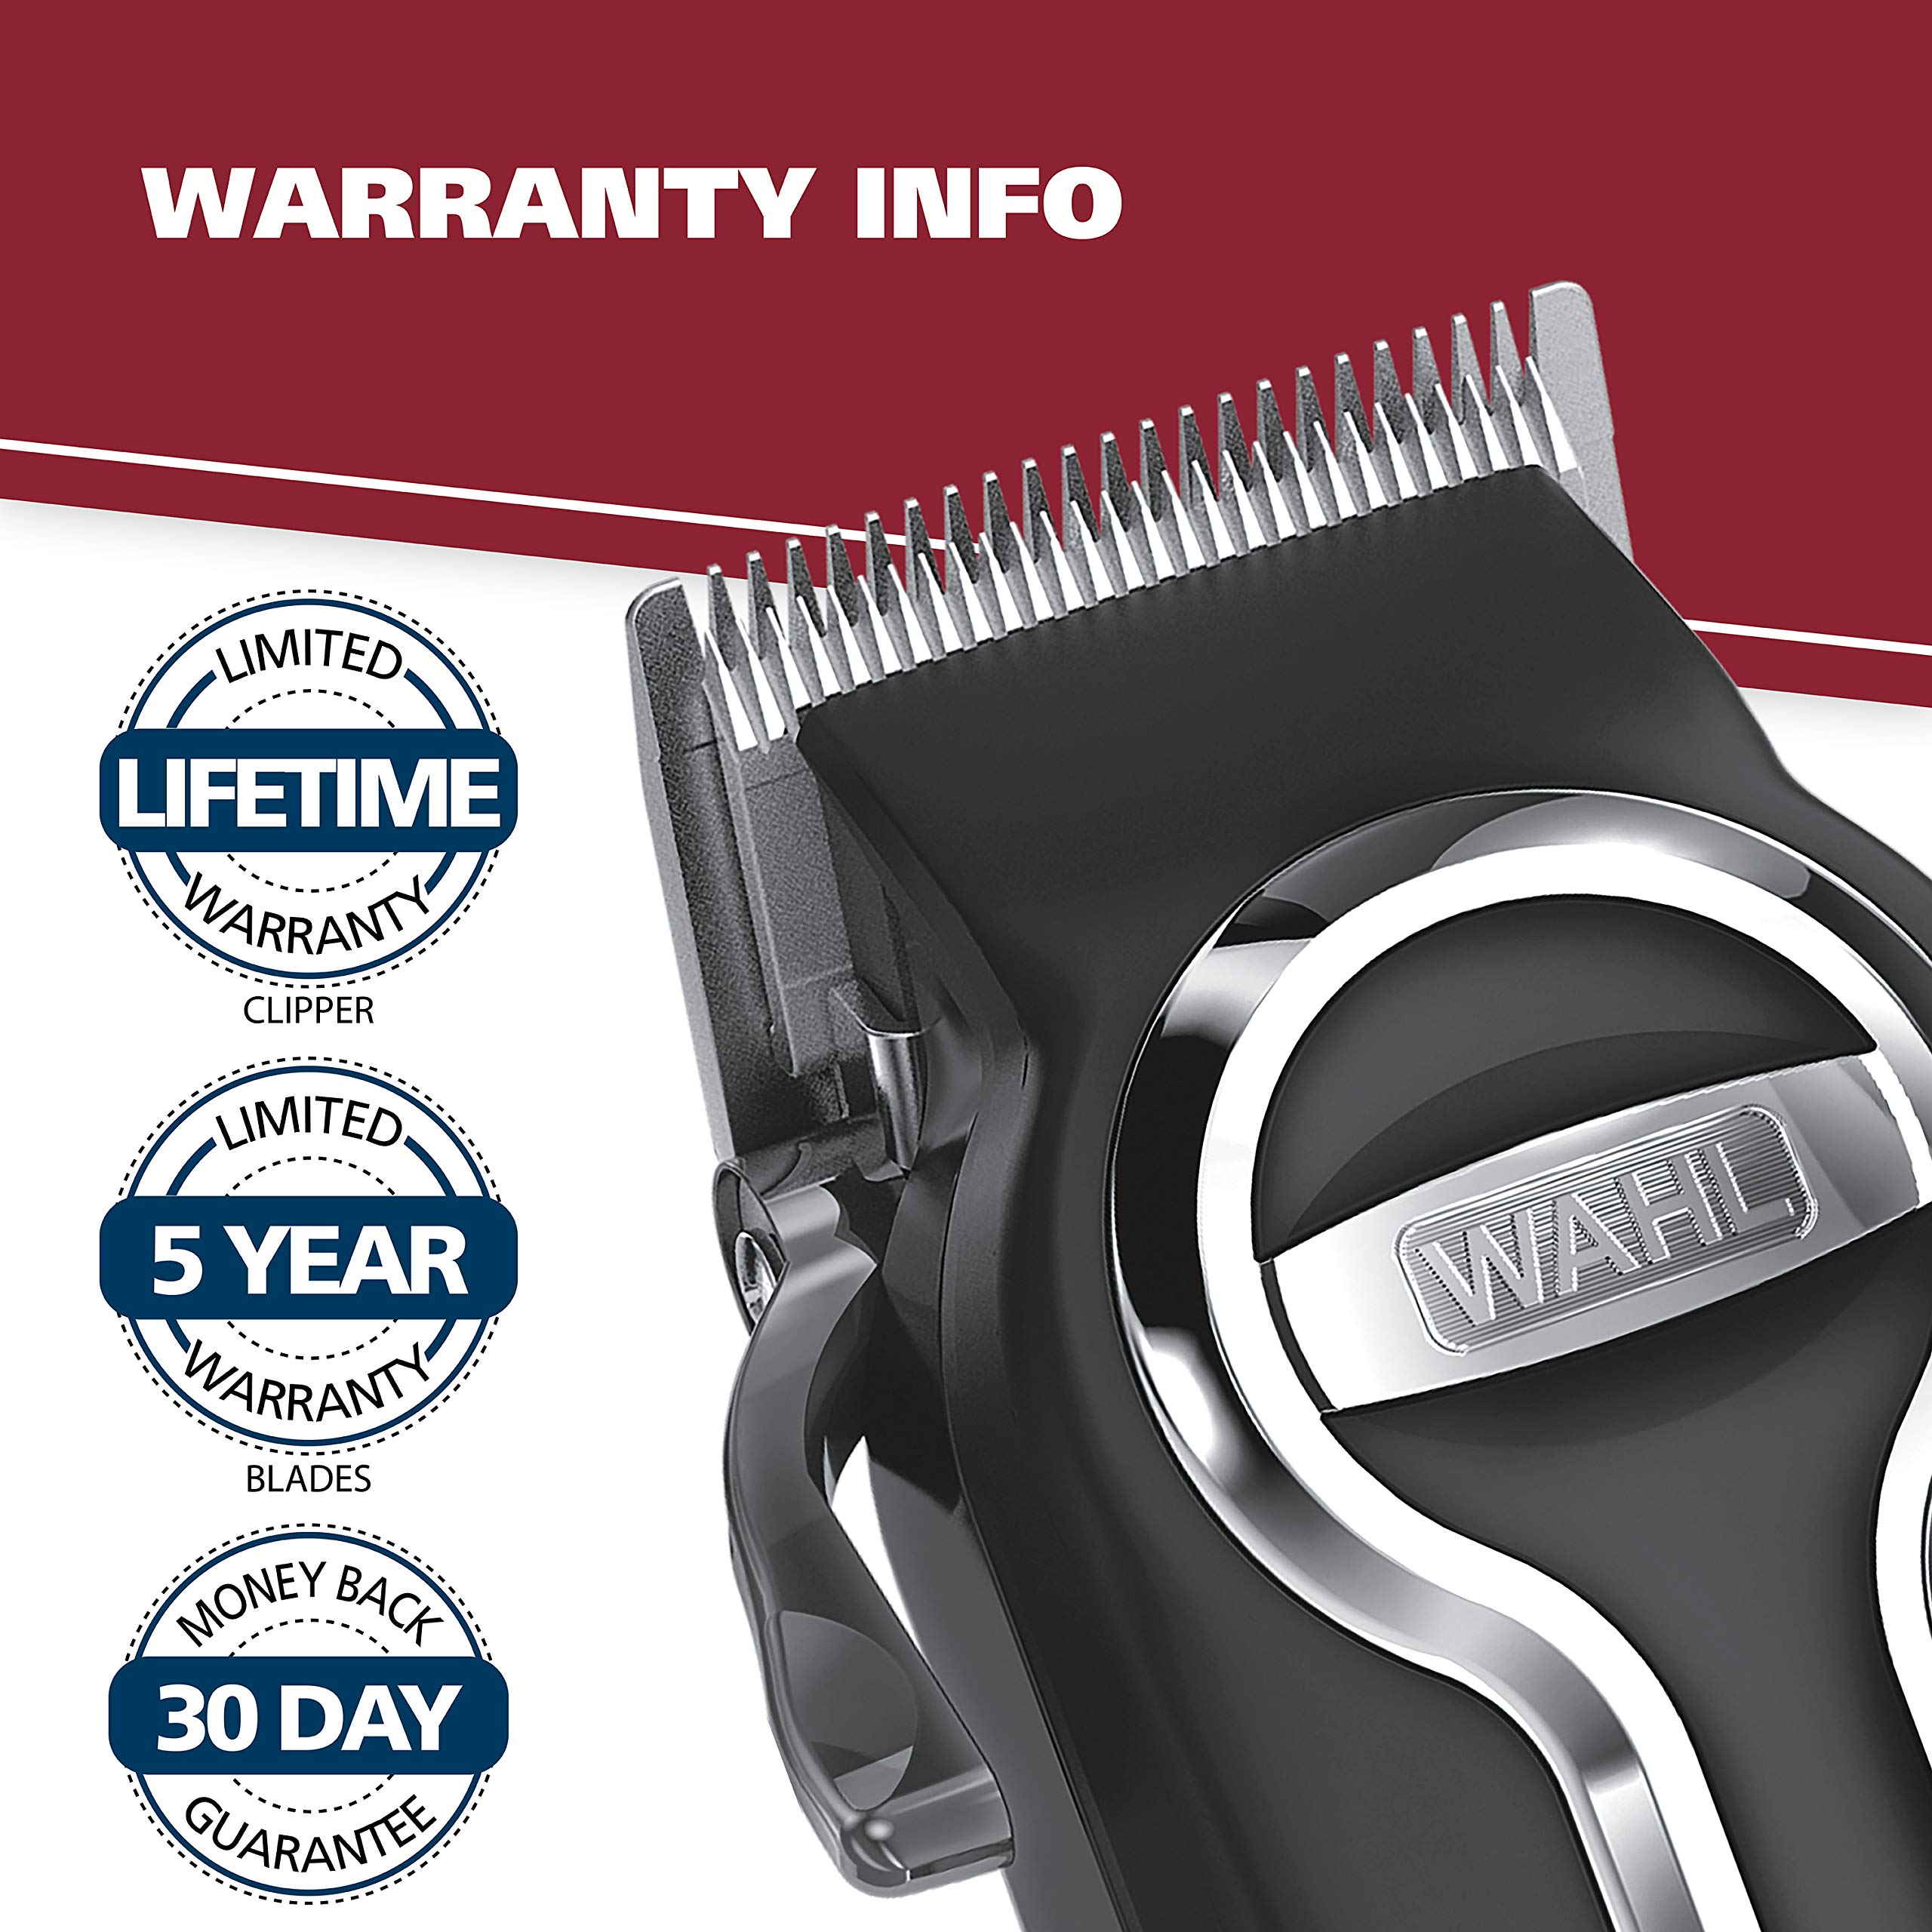 Wahl Clipper Elite Pro High Performance Haircut Kit for men, includes Electric Hair Clippers, secure fit guide combs with stainless steel clips - By The Brand used by Professionals #79602 by WAHL (Image #9)